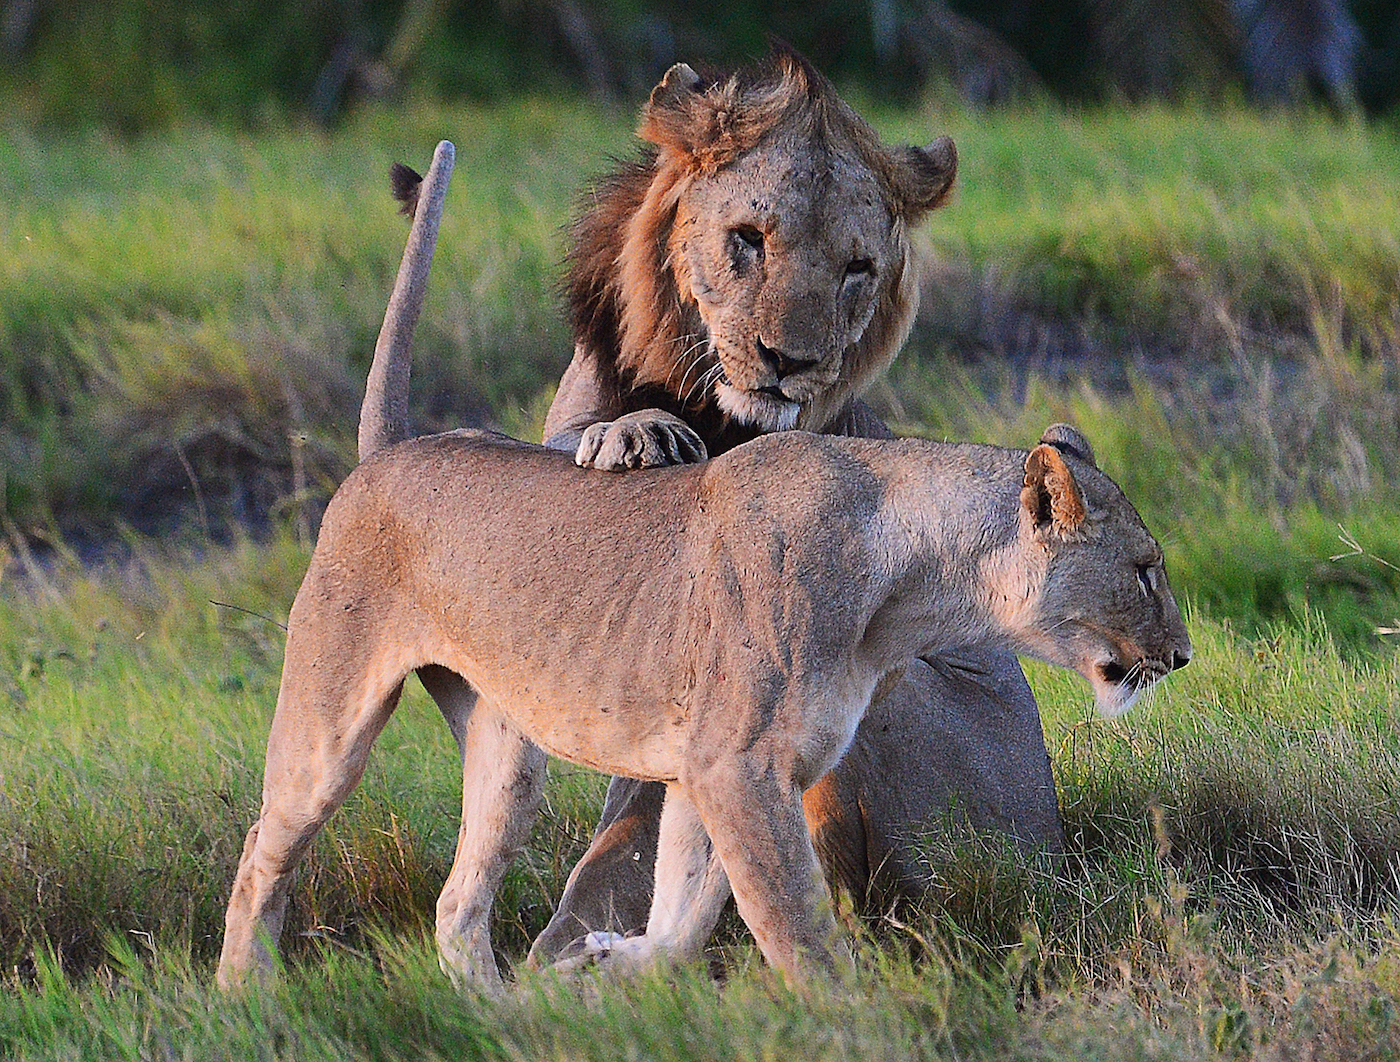 Wild lions are pictured before mating in Amboseli national park, Kenya on March 13, 2013. Amboseli's lion population only a few years ago numbered just100 and concern over lion/human confrontation remains high as numbers have declined in recent years due to increased encroachment of the human population into animal territory and their protection of cattle from predators. AFP PHOTO/Carl de Souza (Photo credit should read CARL DE SOUZA/AFP/Getty Images)